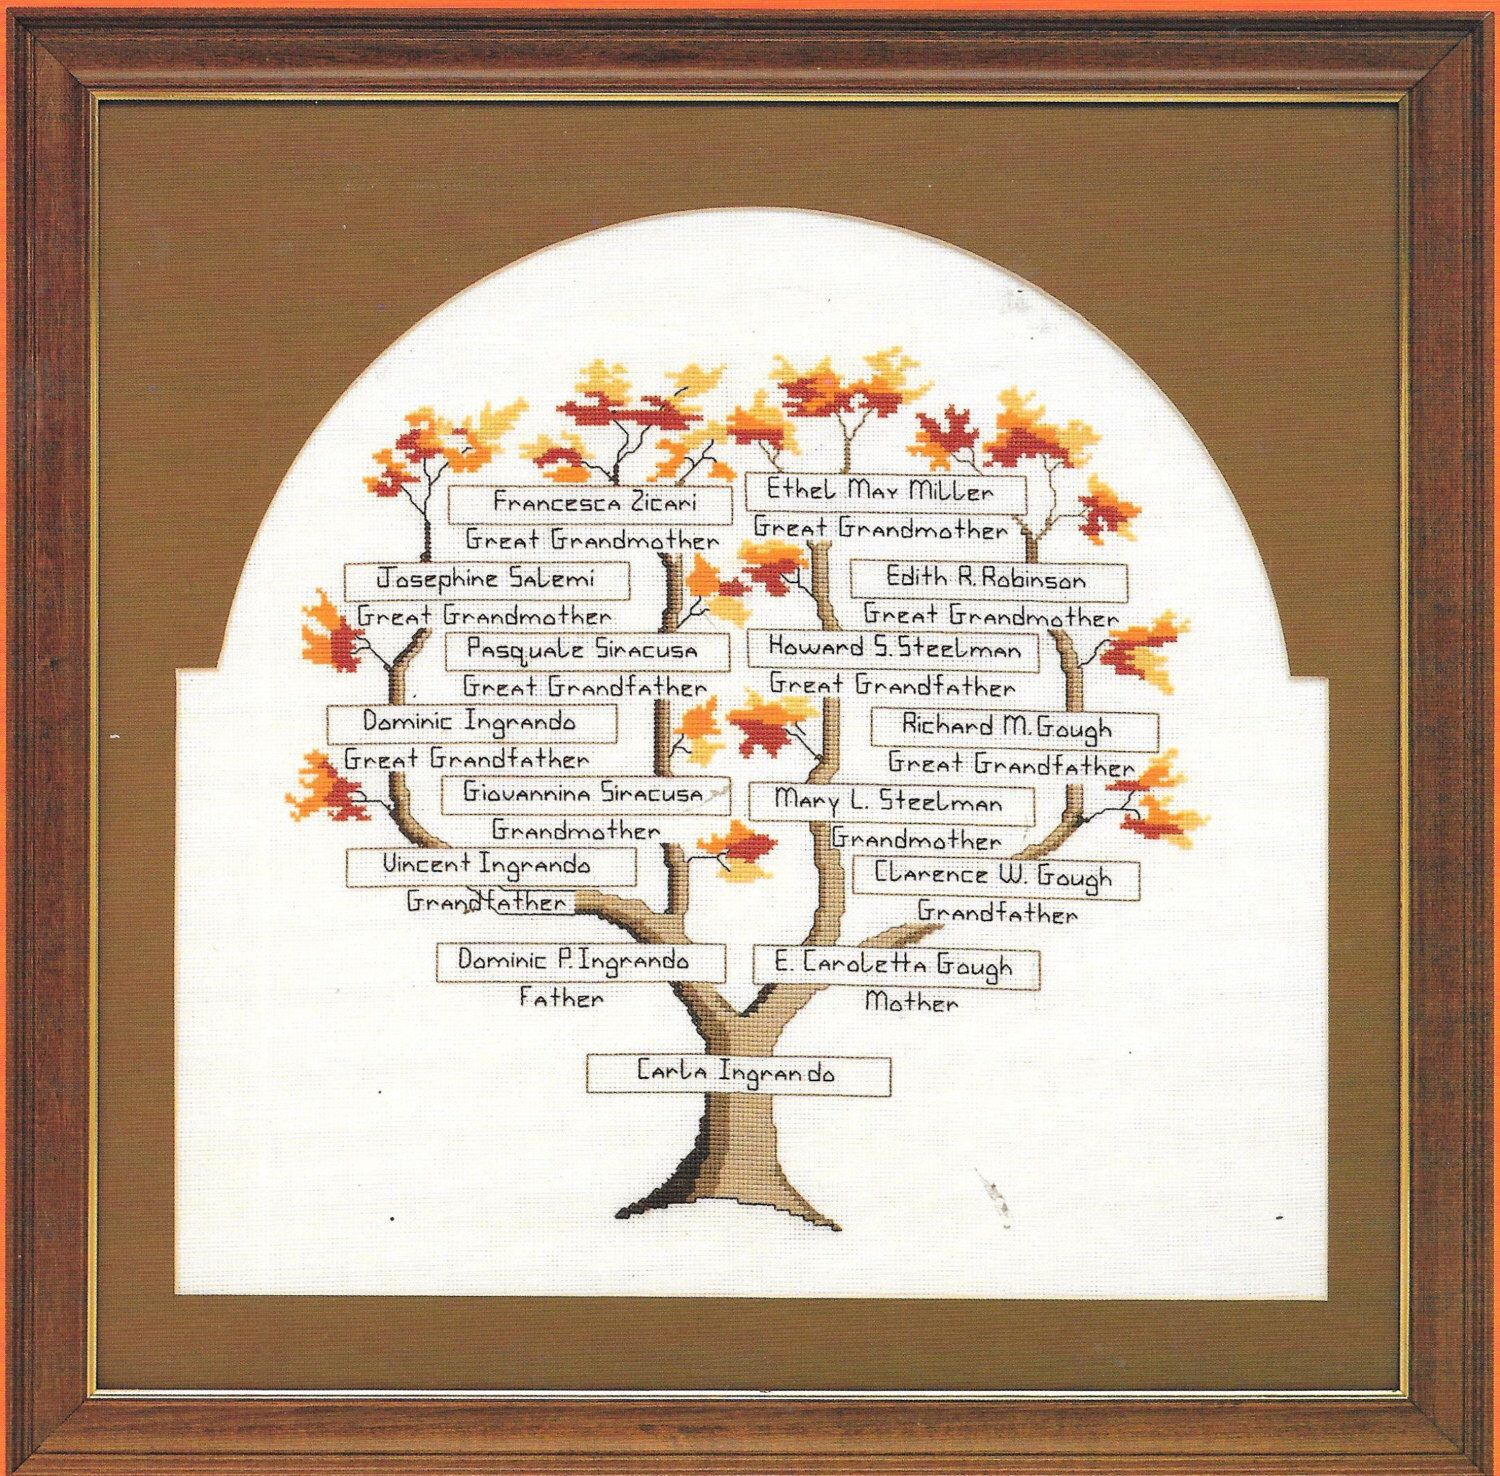 Your Family Tree in Counted Cross Stitch Personalized Autumn Geneology Chart Stitched for You by carolinagirlz2 on Etsy https://www.etsy.com/listing/242338698/your-family-tree-in-counted-cross-stitch